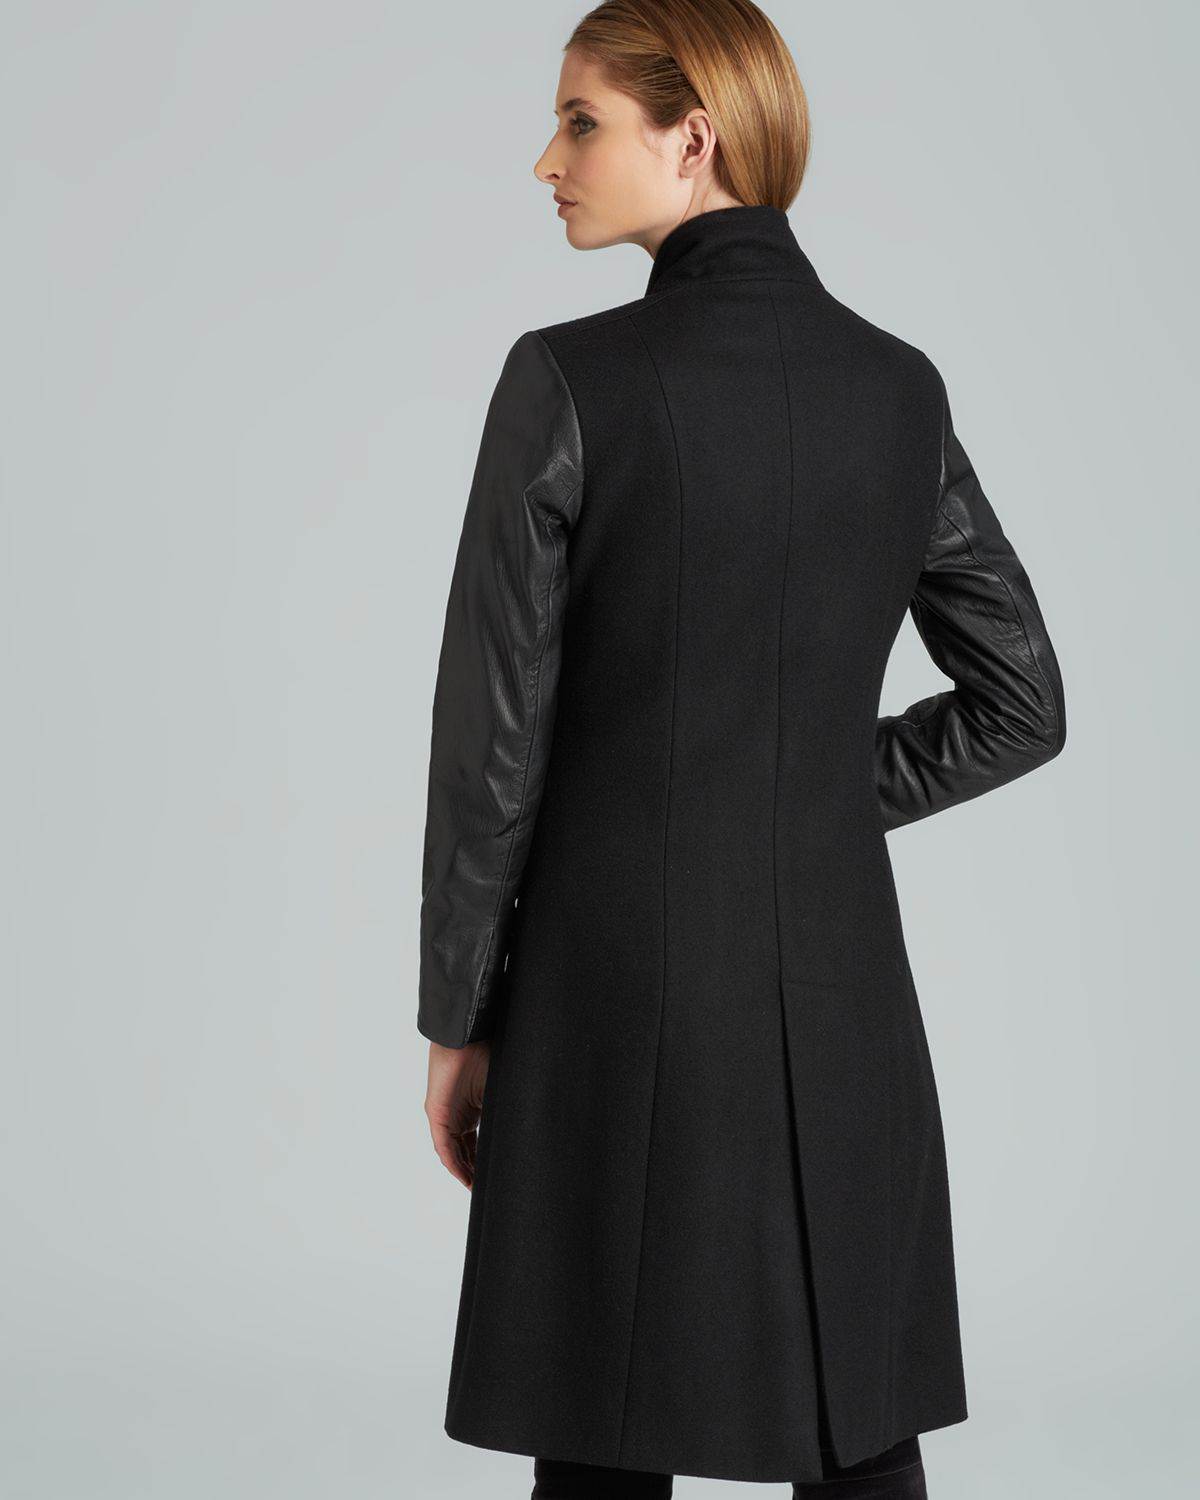 Adrianna papell Long Fitted Coat with Leather Trim in Black | Lyst